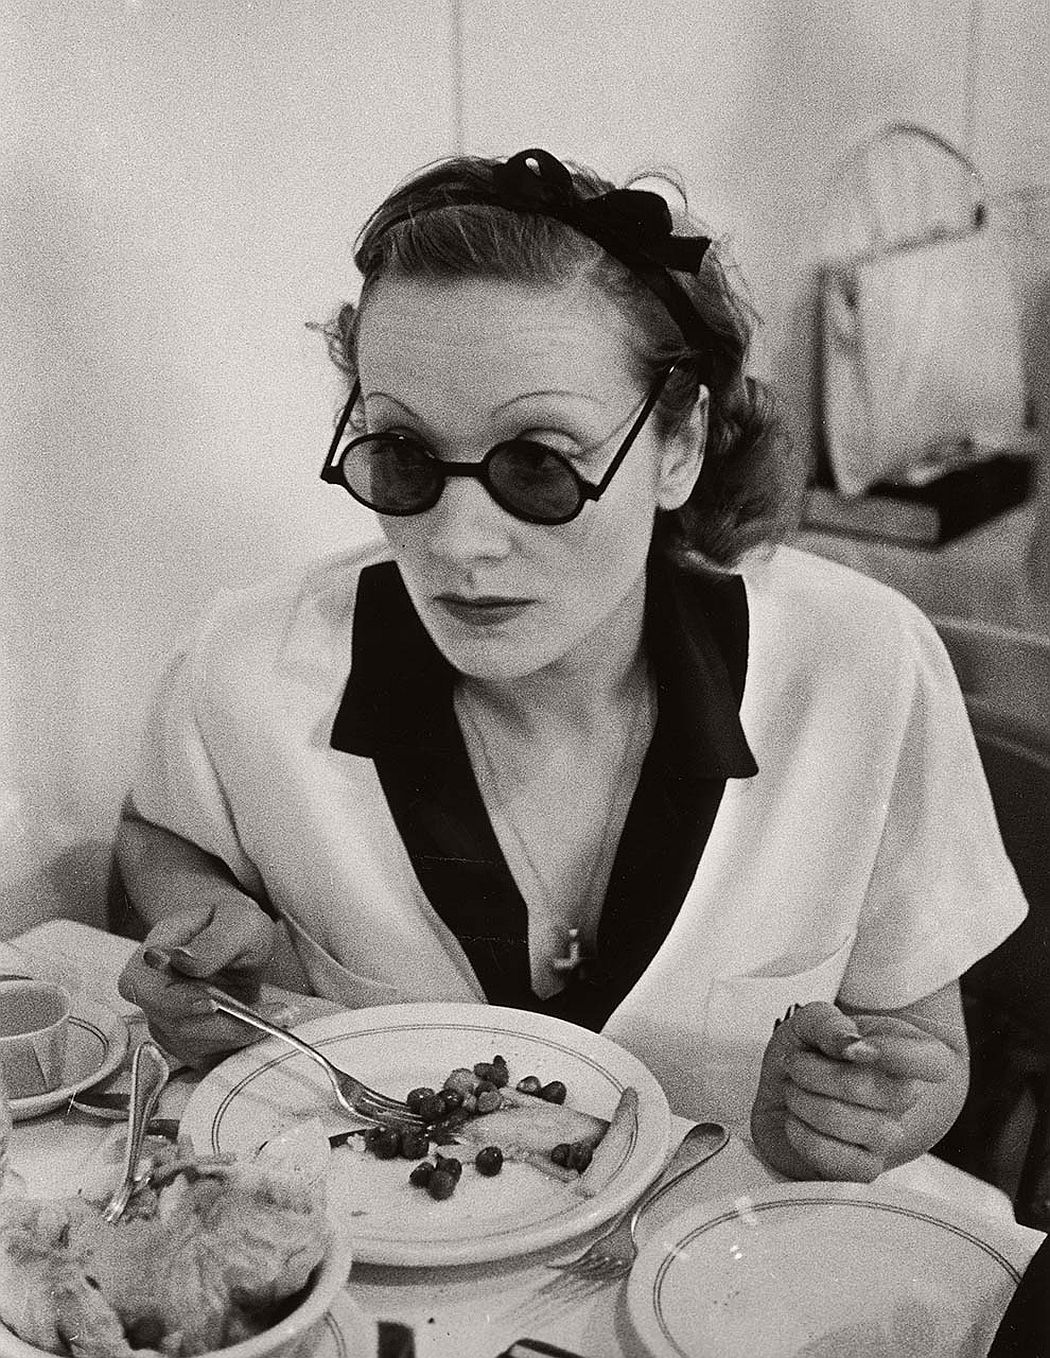 vintage-funny-bw-photos-of-celebrities-eating-02